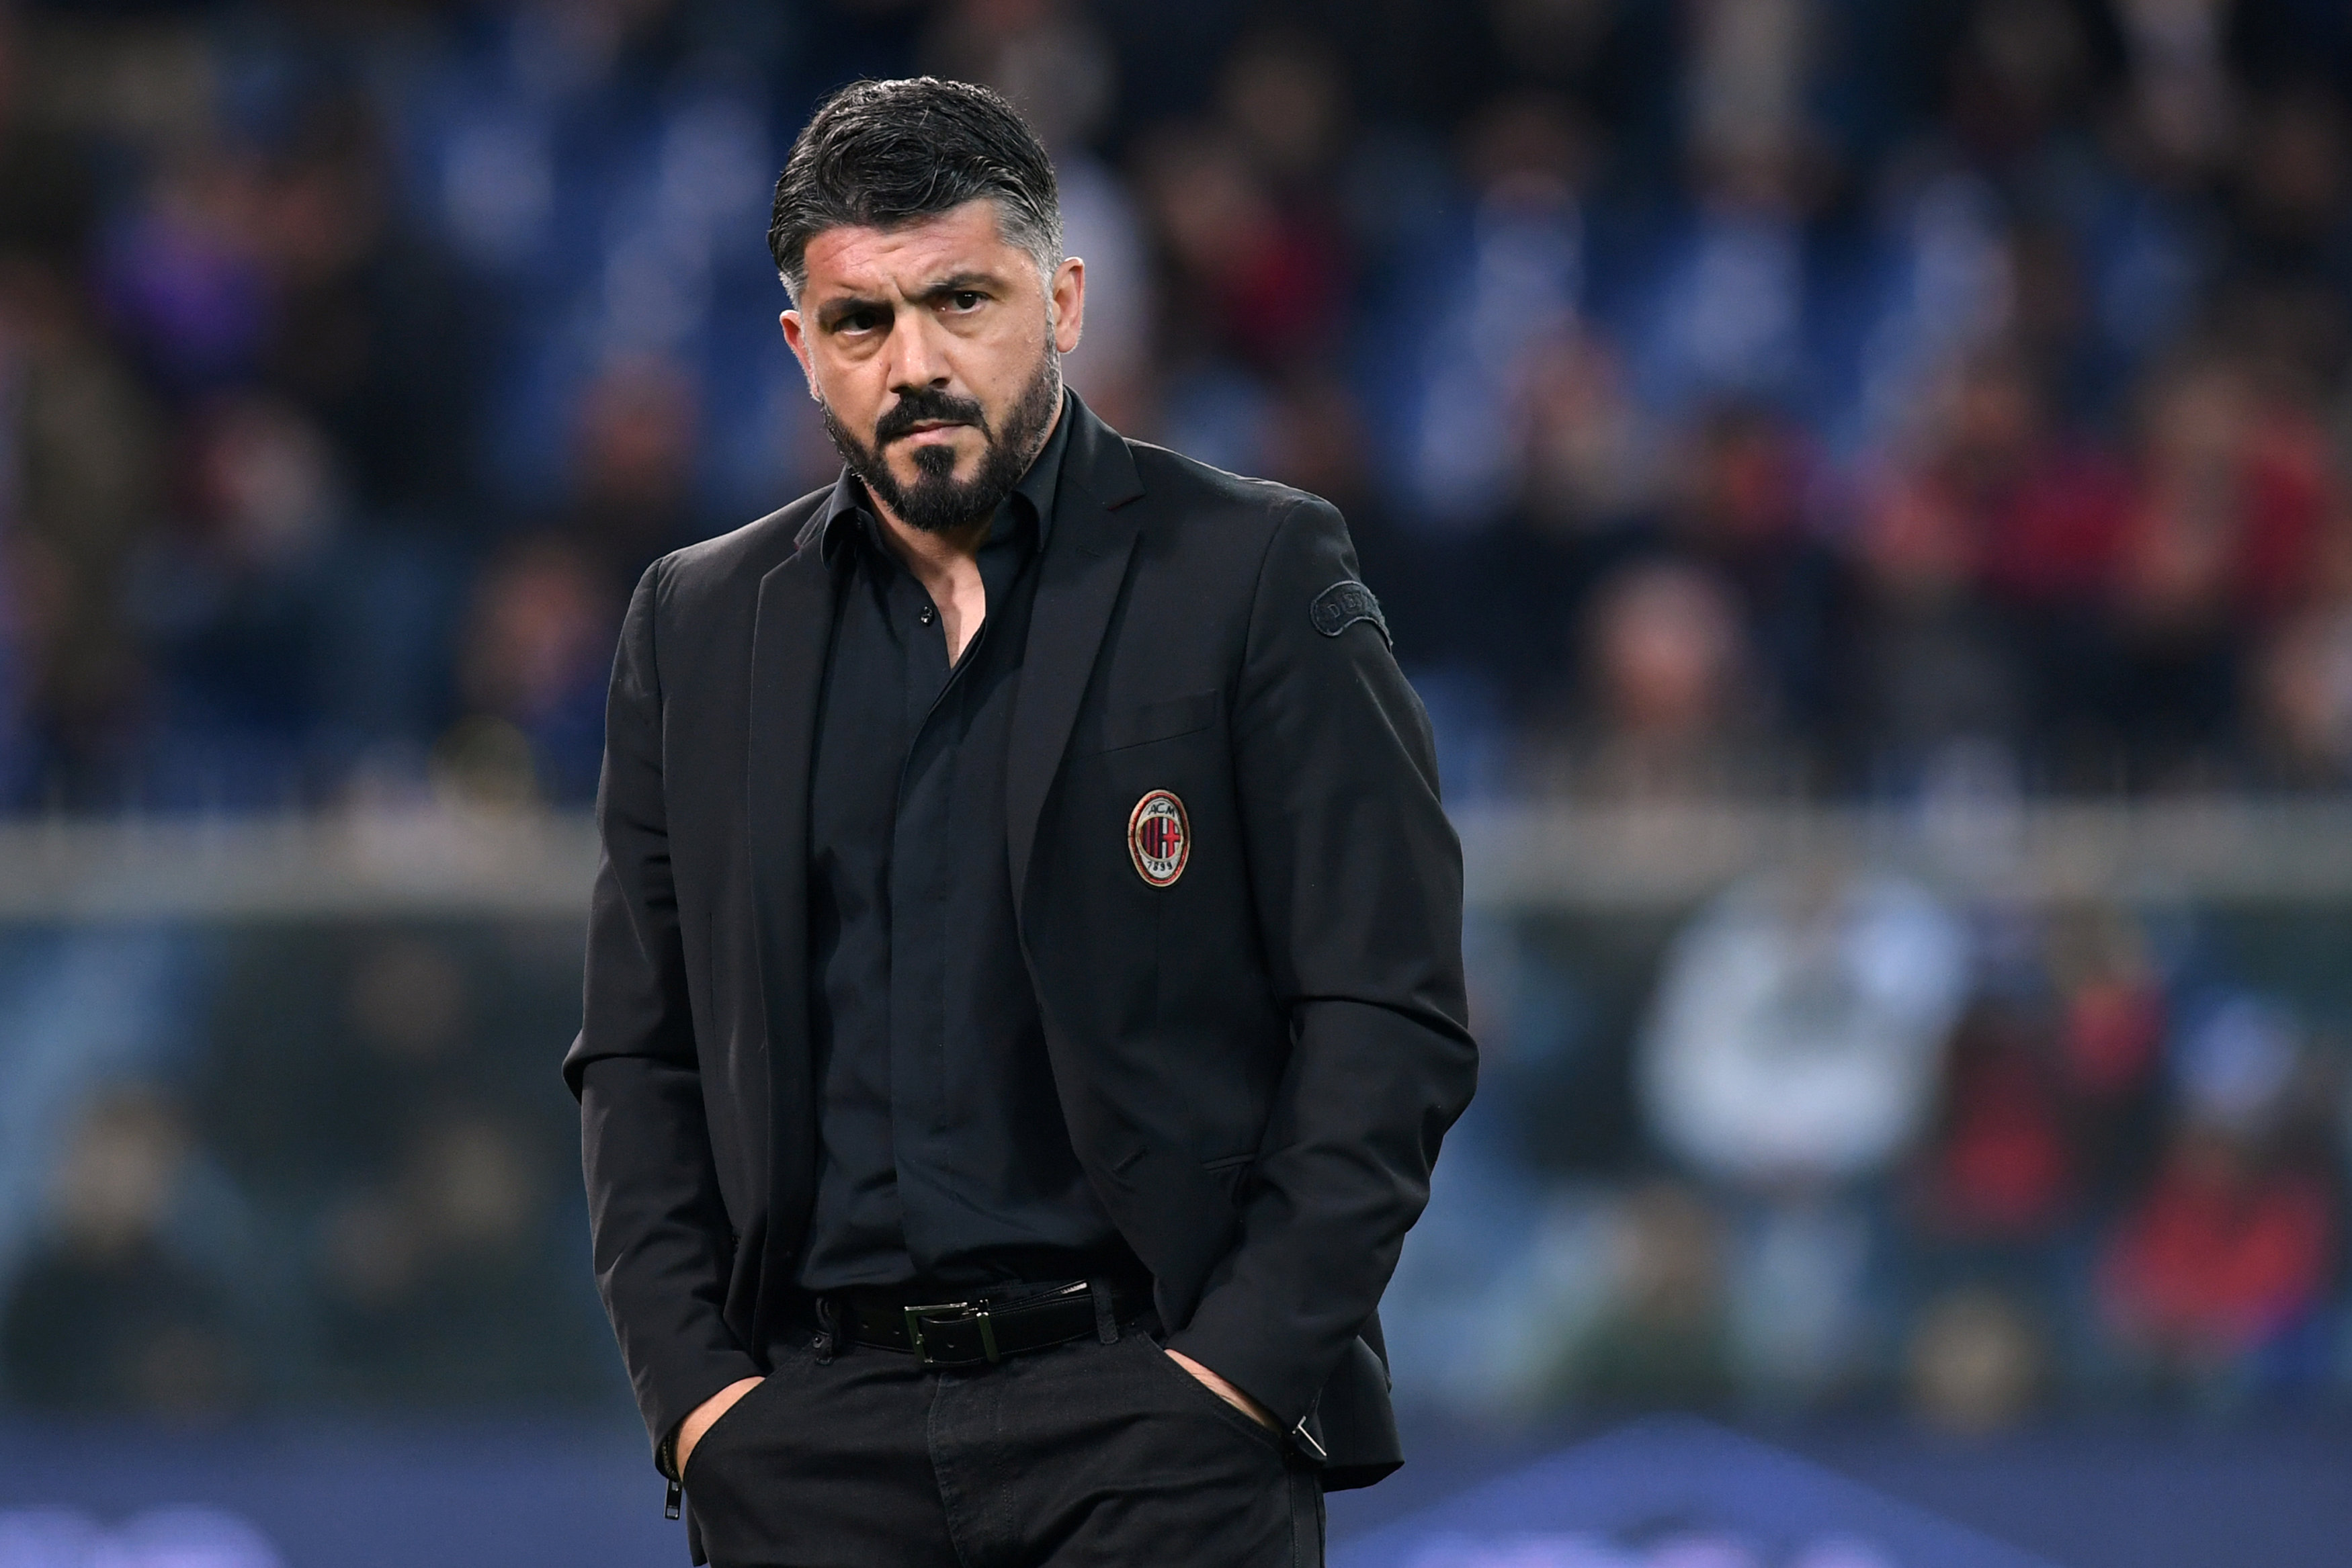 Gennaro Gattuso in line to replace Carlo Ancelotti if sacked by Napoli